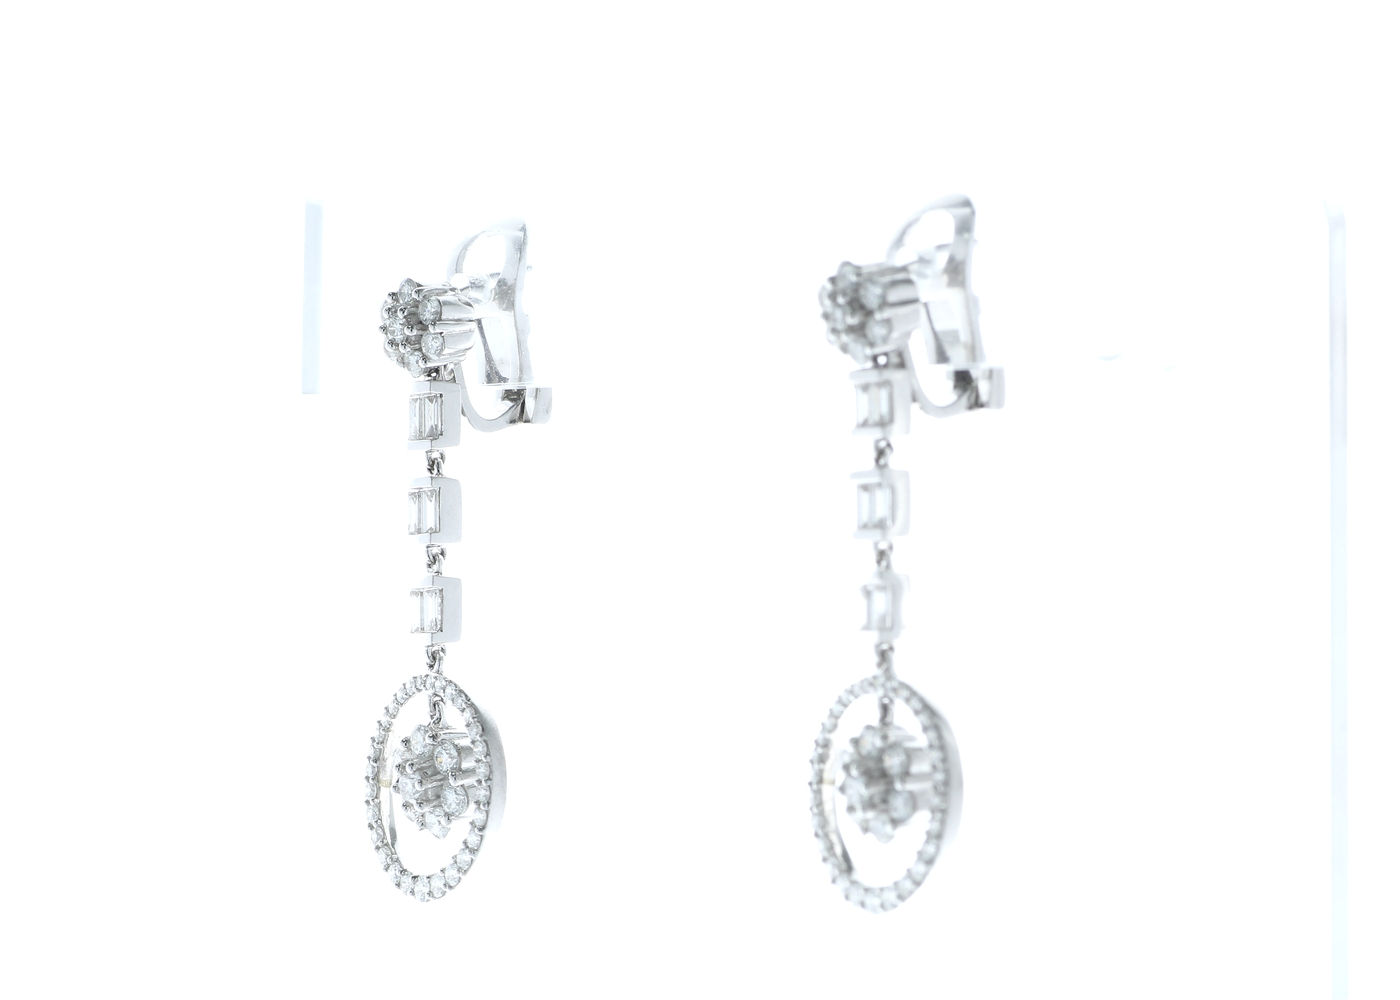 18ct White Gold Diamond Drop Cluster Earrings 1.84 Carats - Image 2 of 4